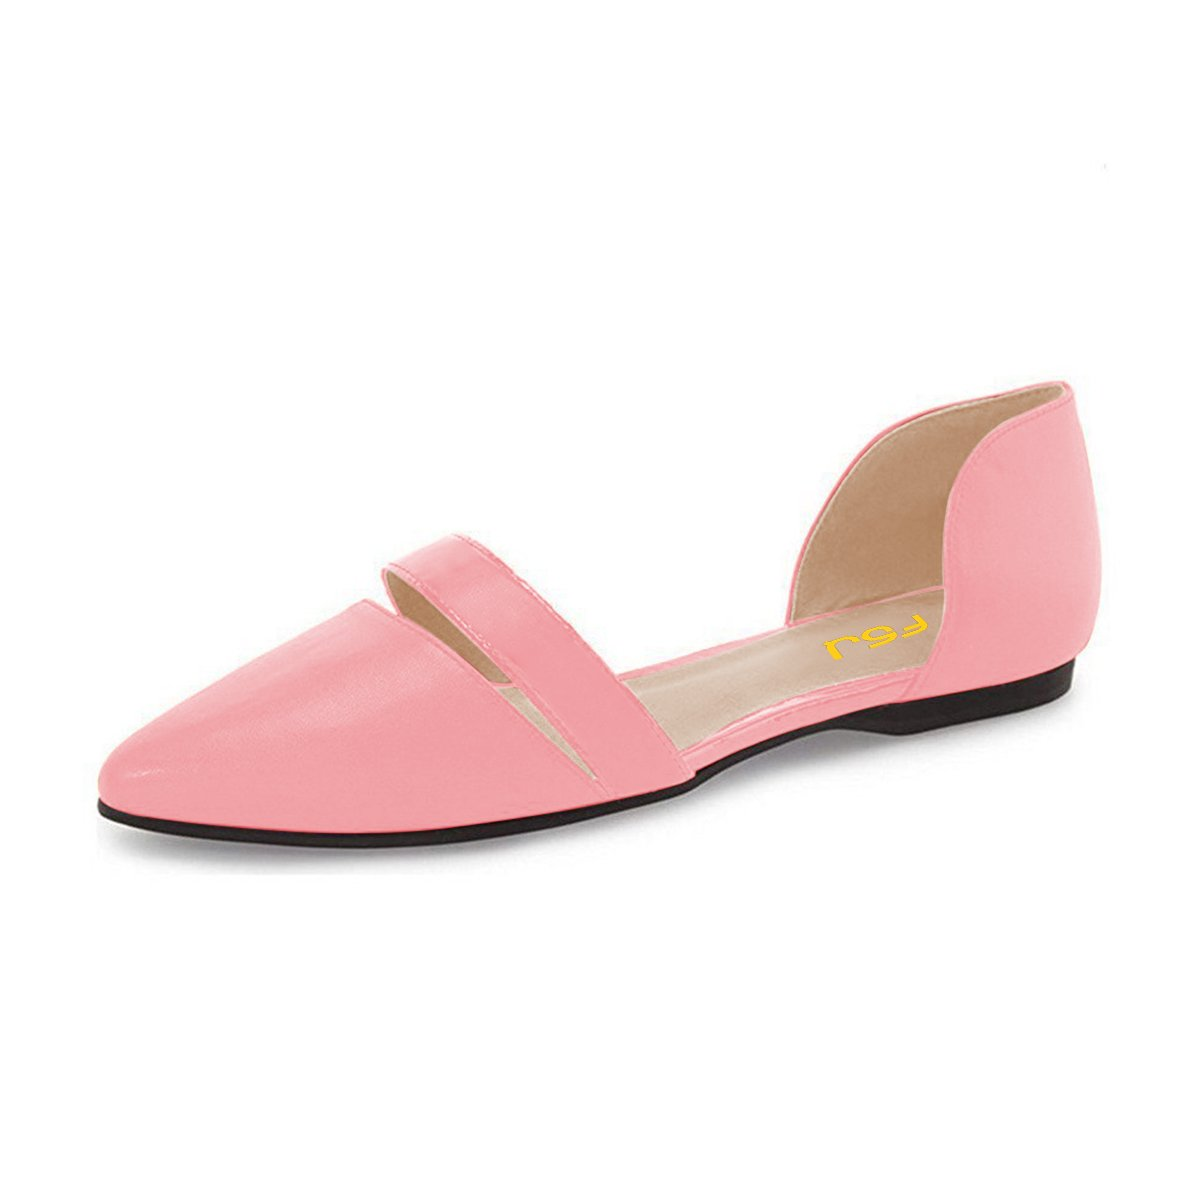 FSJ Women Cute D'Orsay Ballet Flats for Comfort Pointed Toe Low Heels Dress Shoes Size 4-15 US B06Y49RC4B 10 B(M) US|Pink